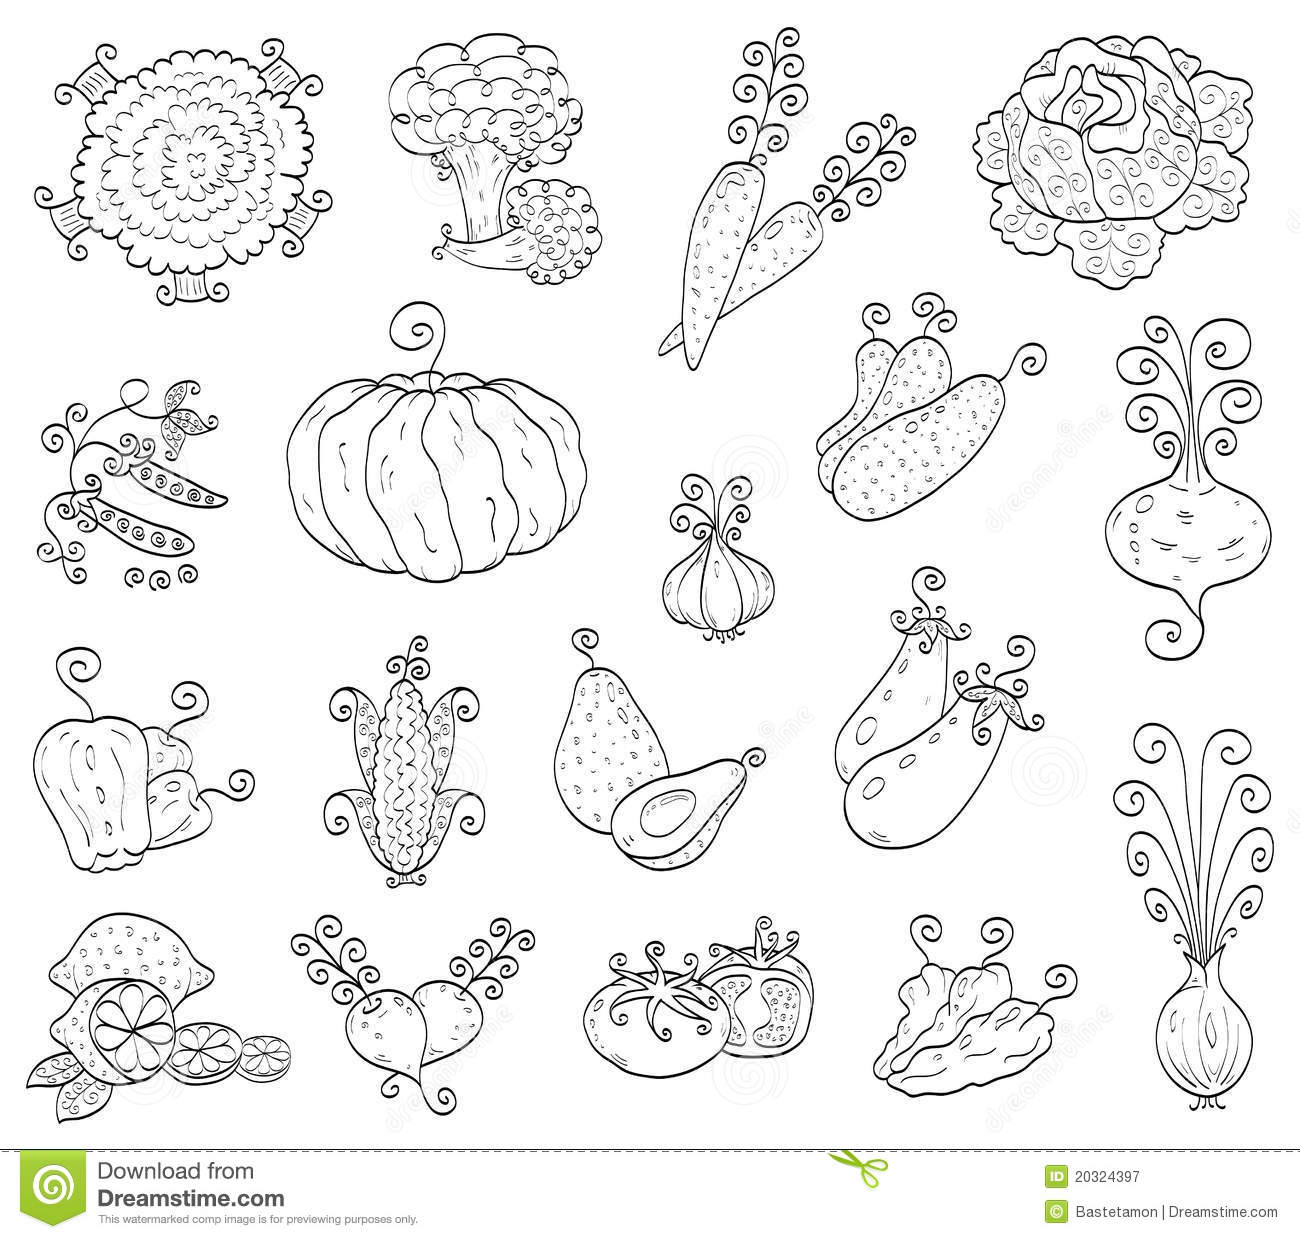 1462985120shopkins season 3 furthermore how to draw Chomper from Plants vs Zombies step 0 additionally flower coloring page 10 additionally  besides Kids Table Wheat also d1a3f97af2ef16f2ed2d148472fc7a46 in addition harvesting the corn field printable kids coloring sheet moreover  in addition  likewise  also . on corn plant coloring pages printables